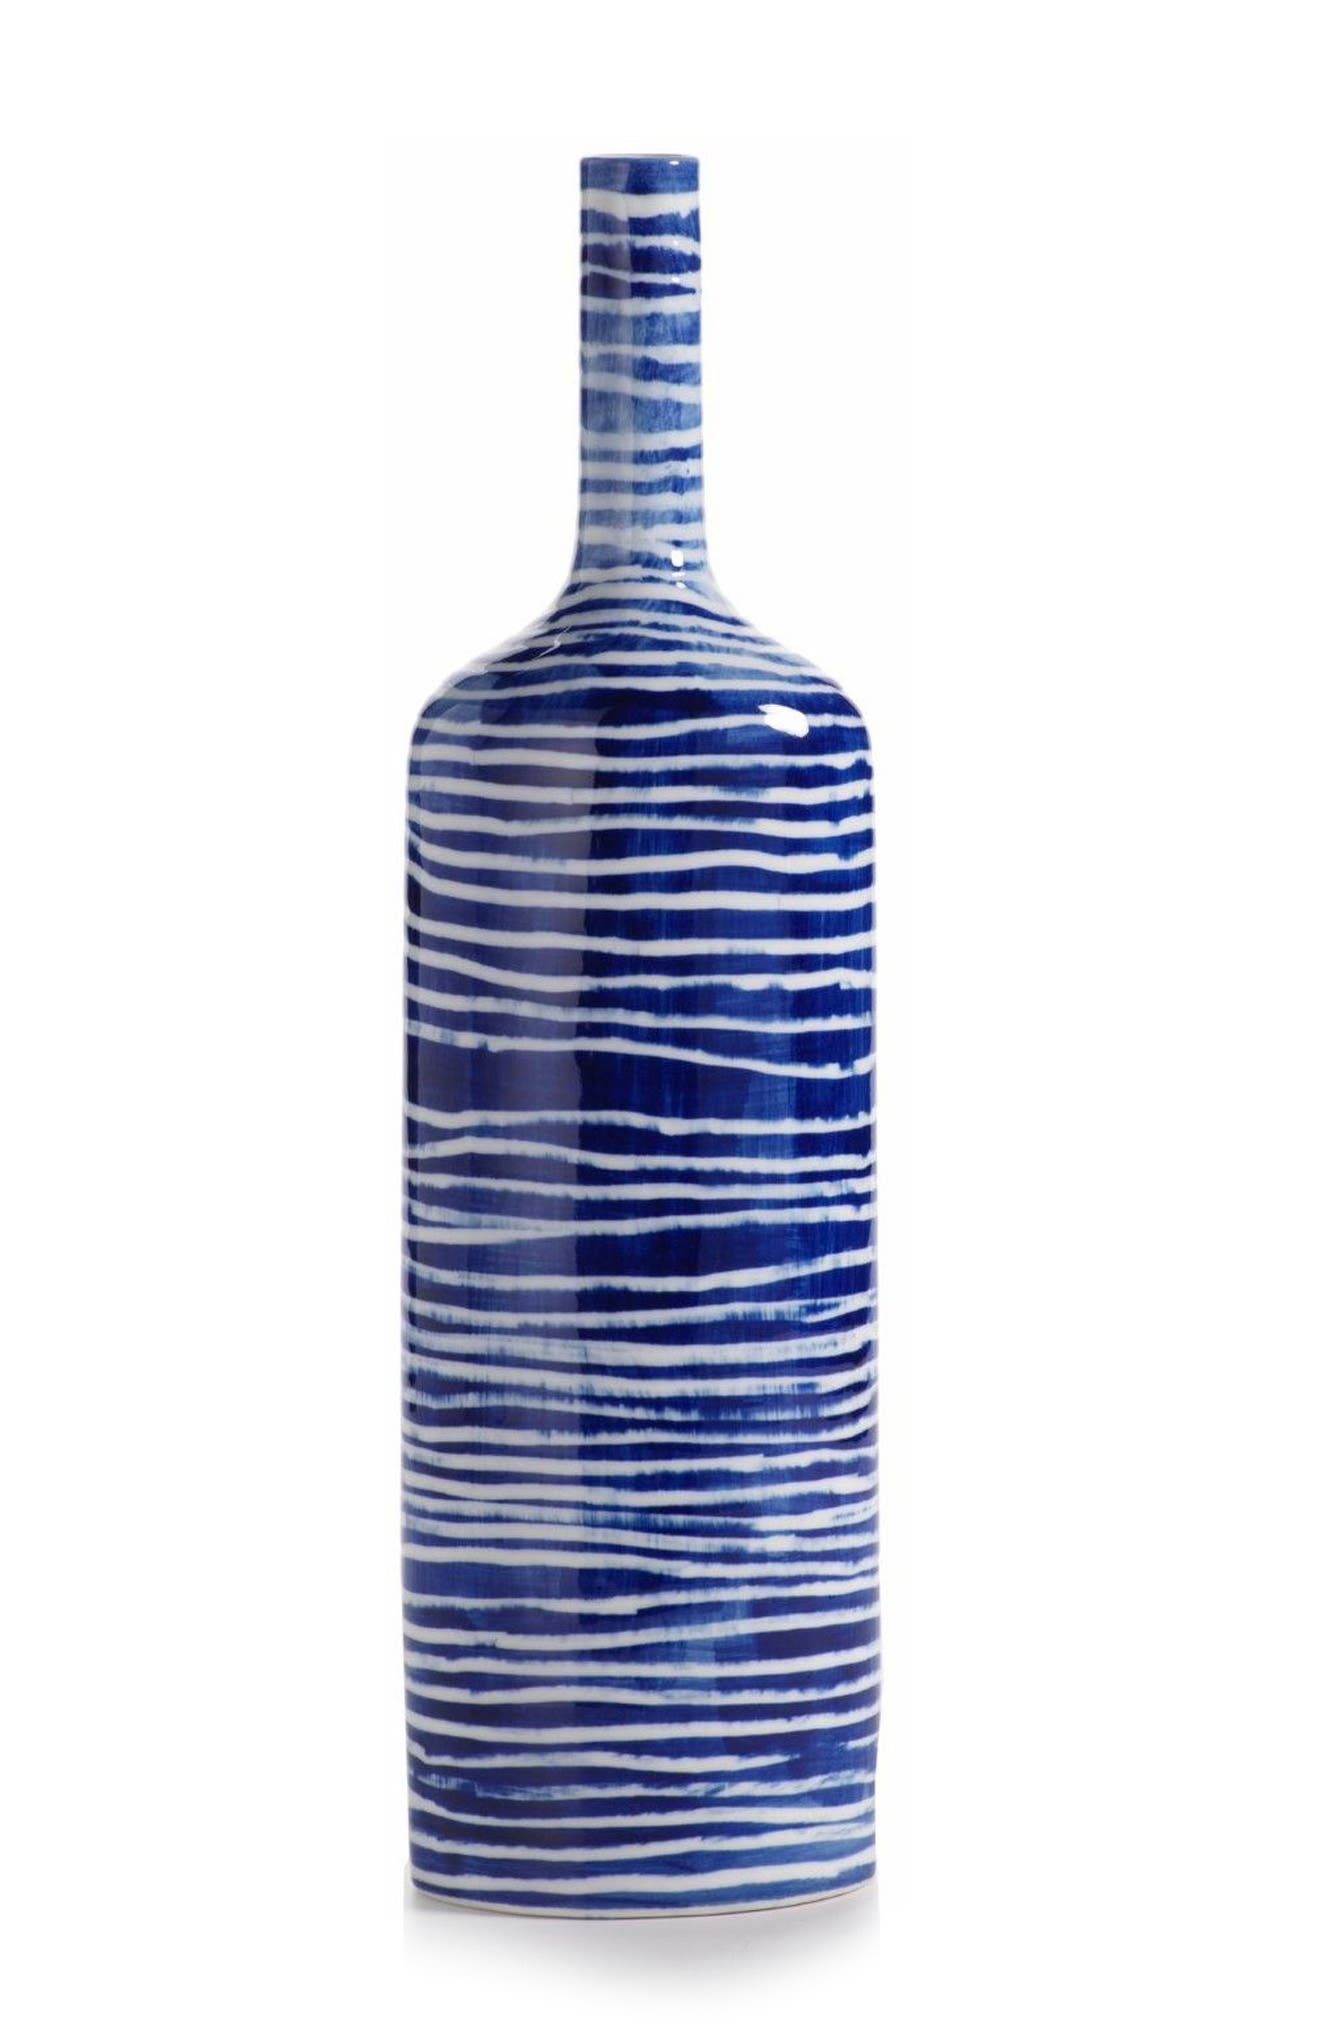 Yahto Decorative Ceramic Bottle,                             Main thumbnail 1, color,                             Blue